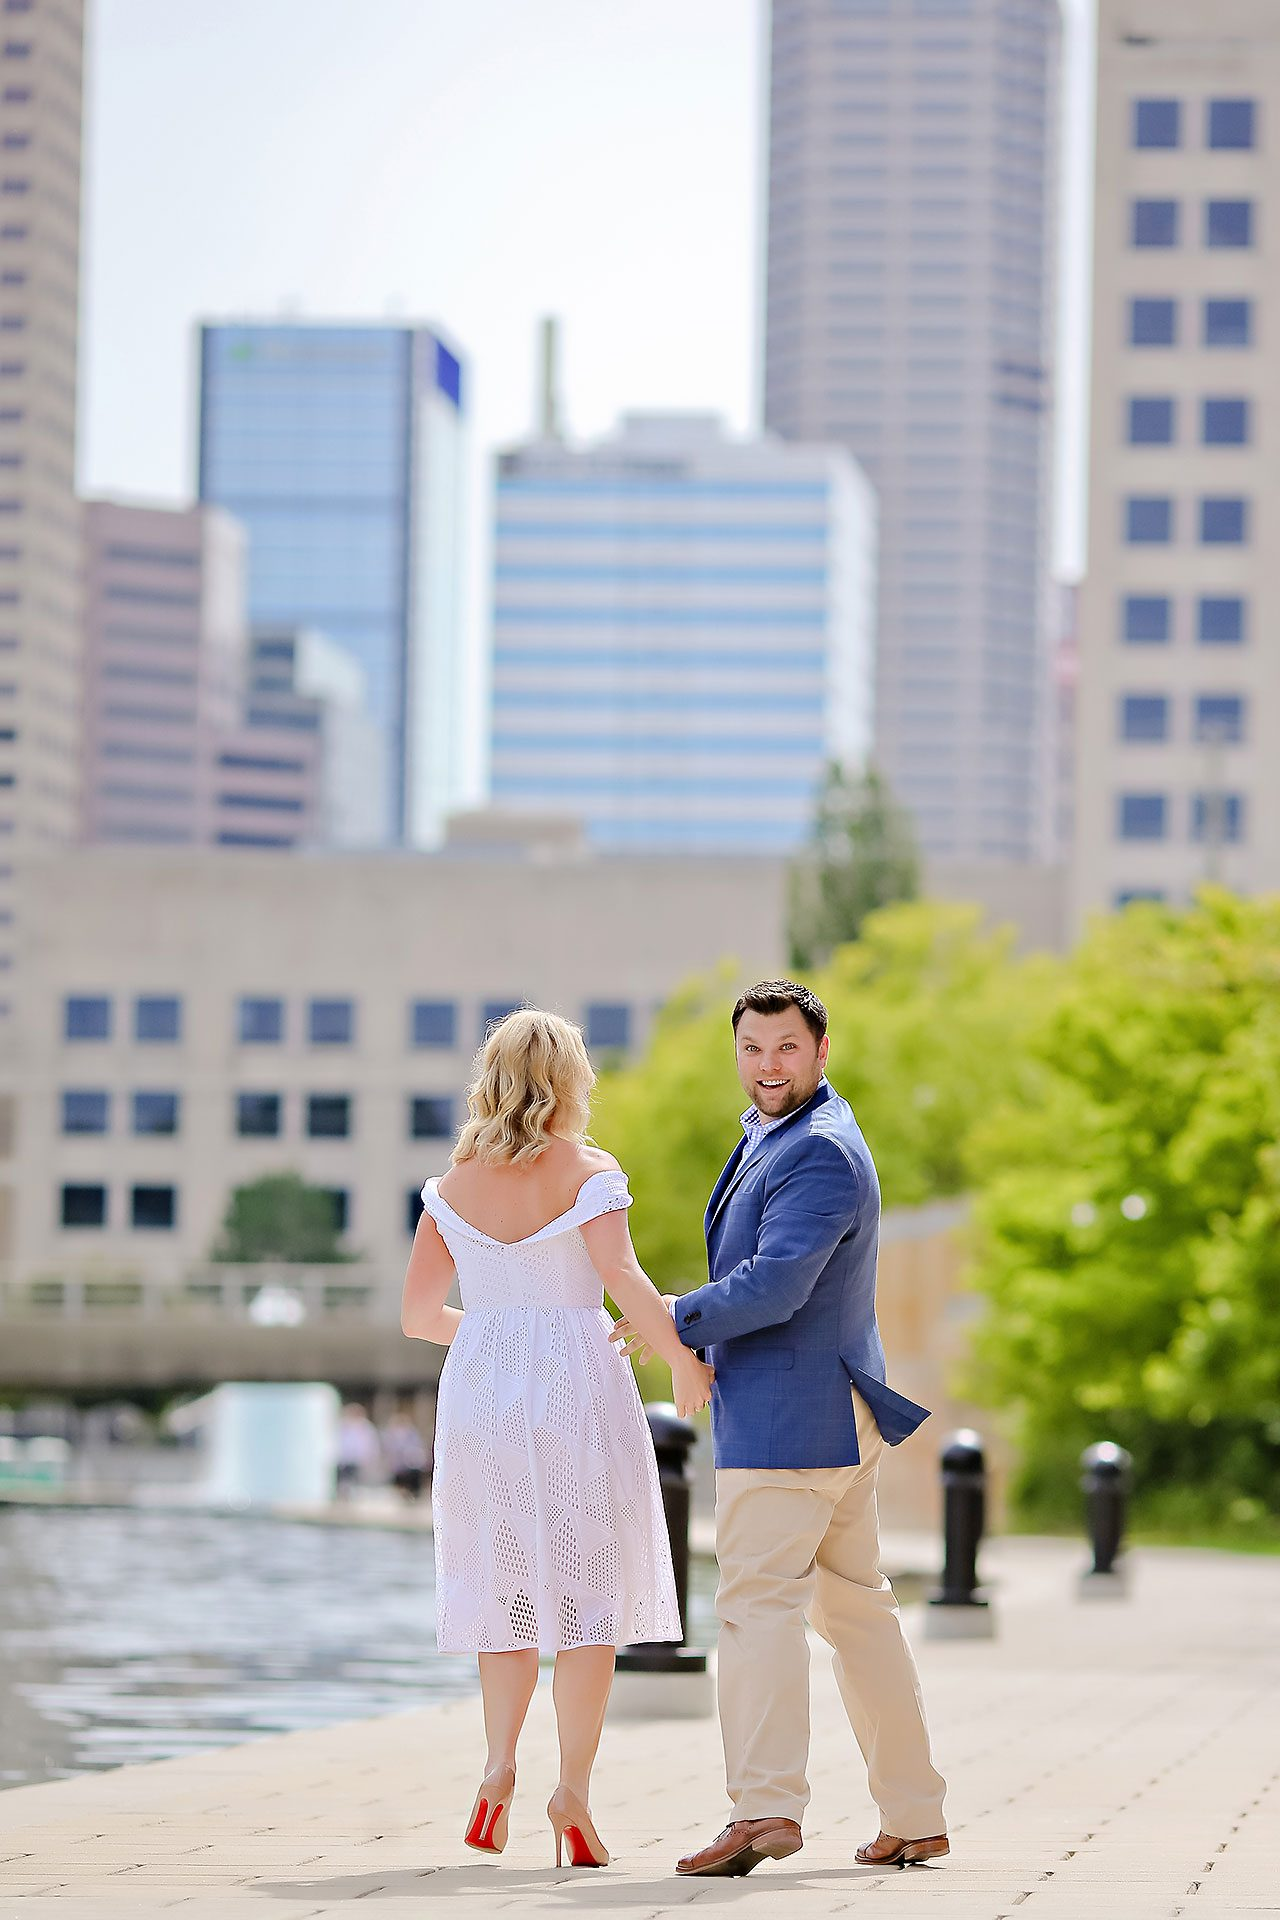 Chelsea Tom Downtown Indianapolis Engagement Session 120